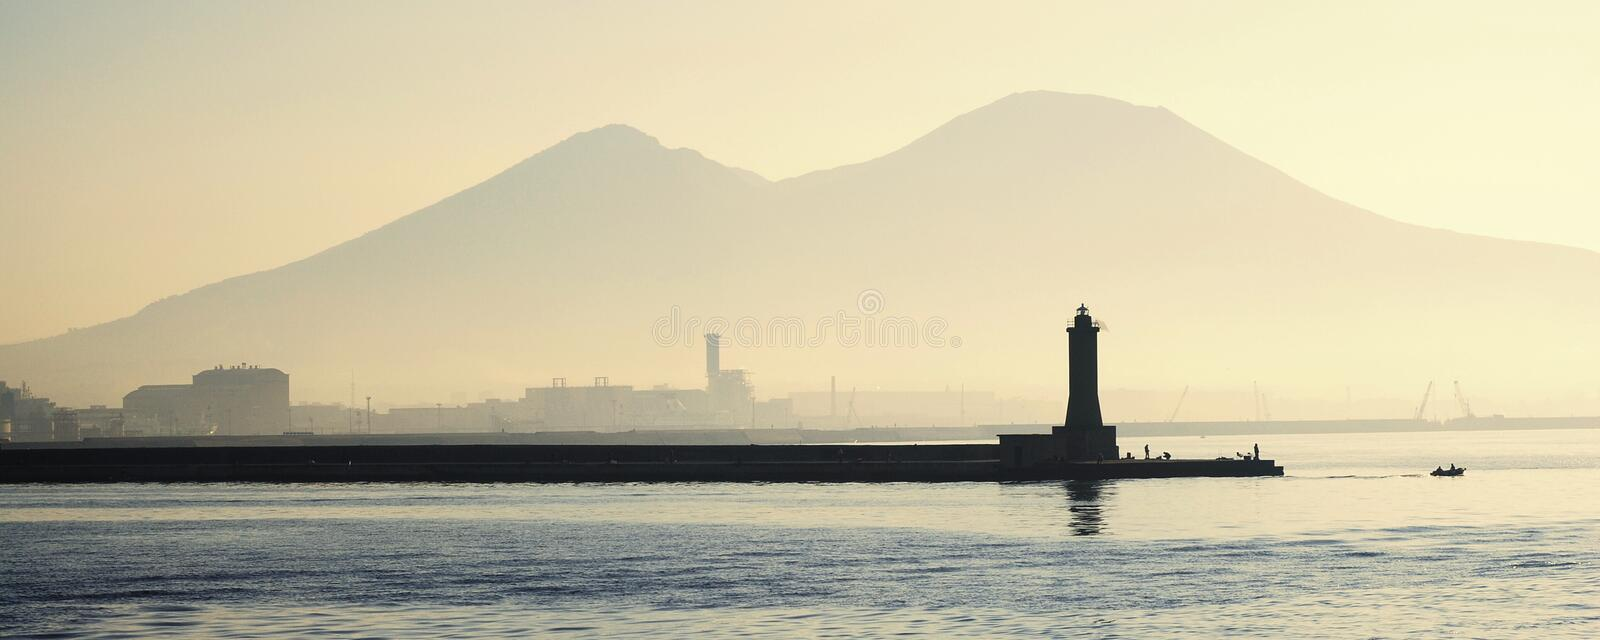 Lighthouse with Mount Vesuvius stock image